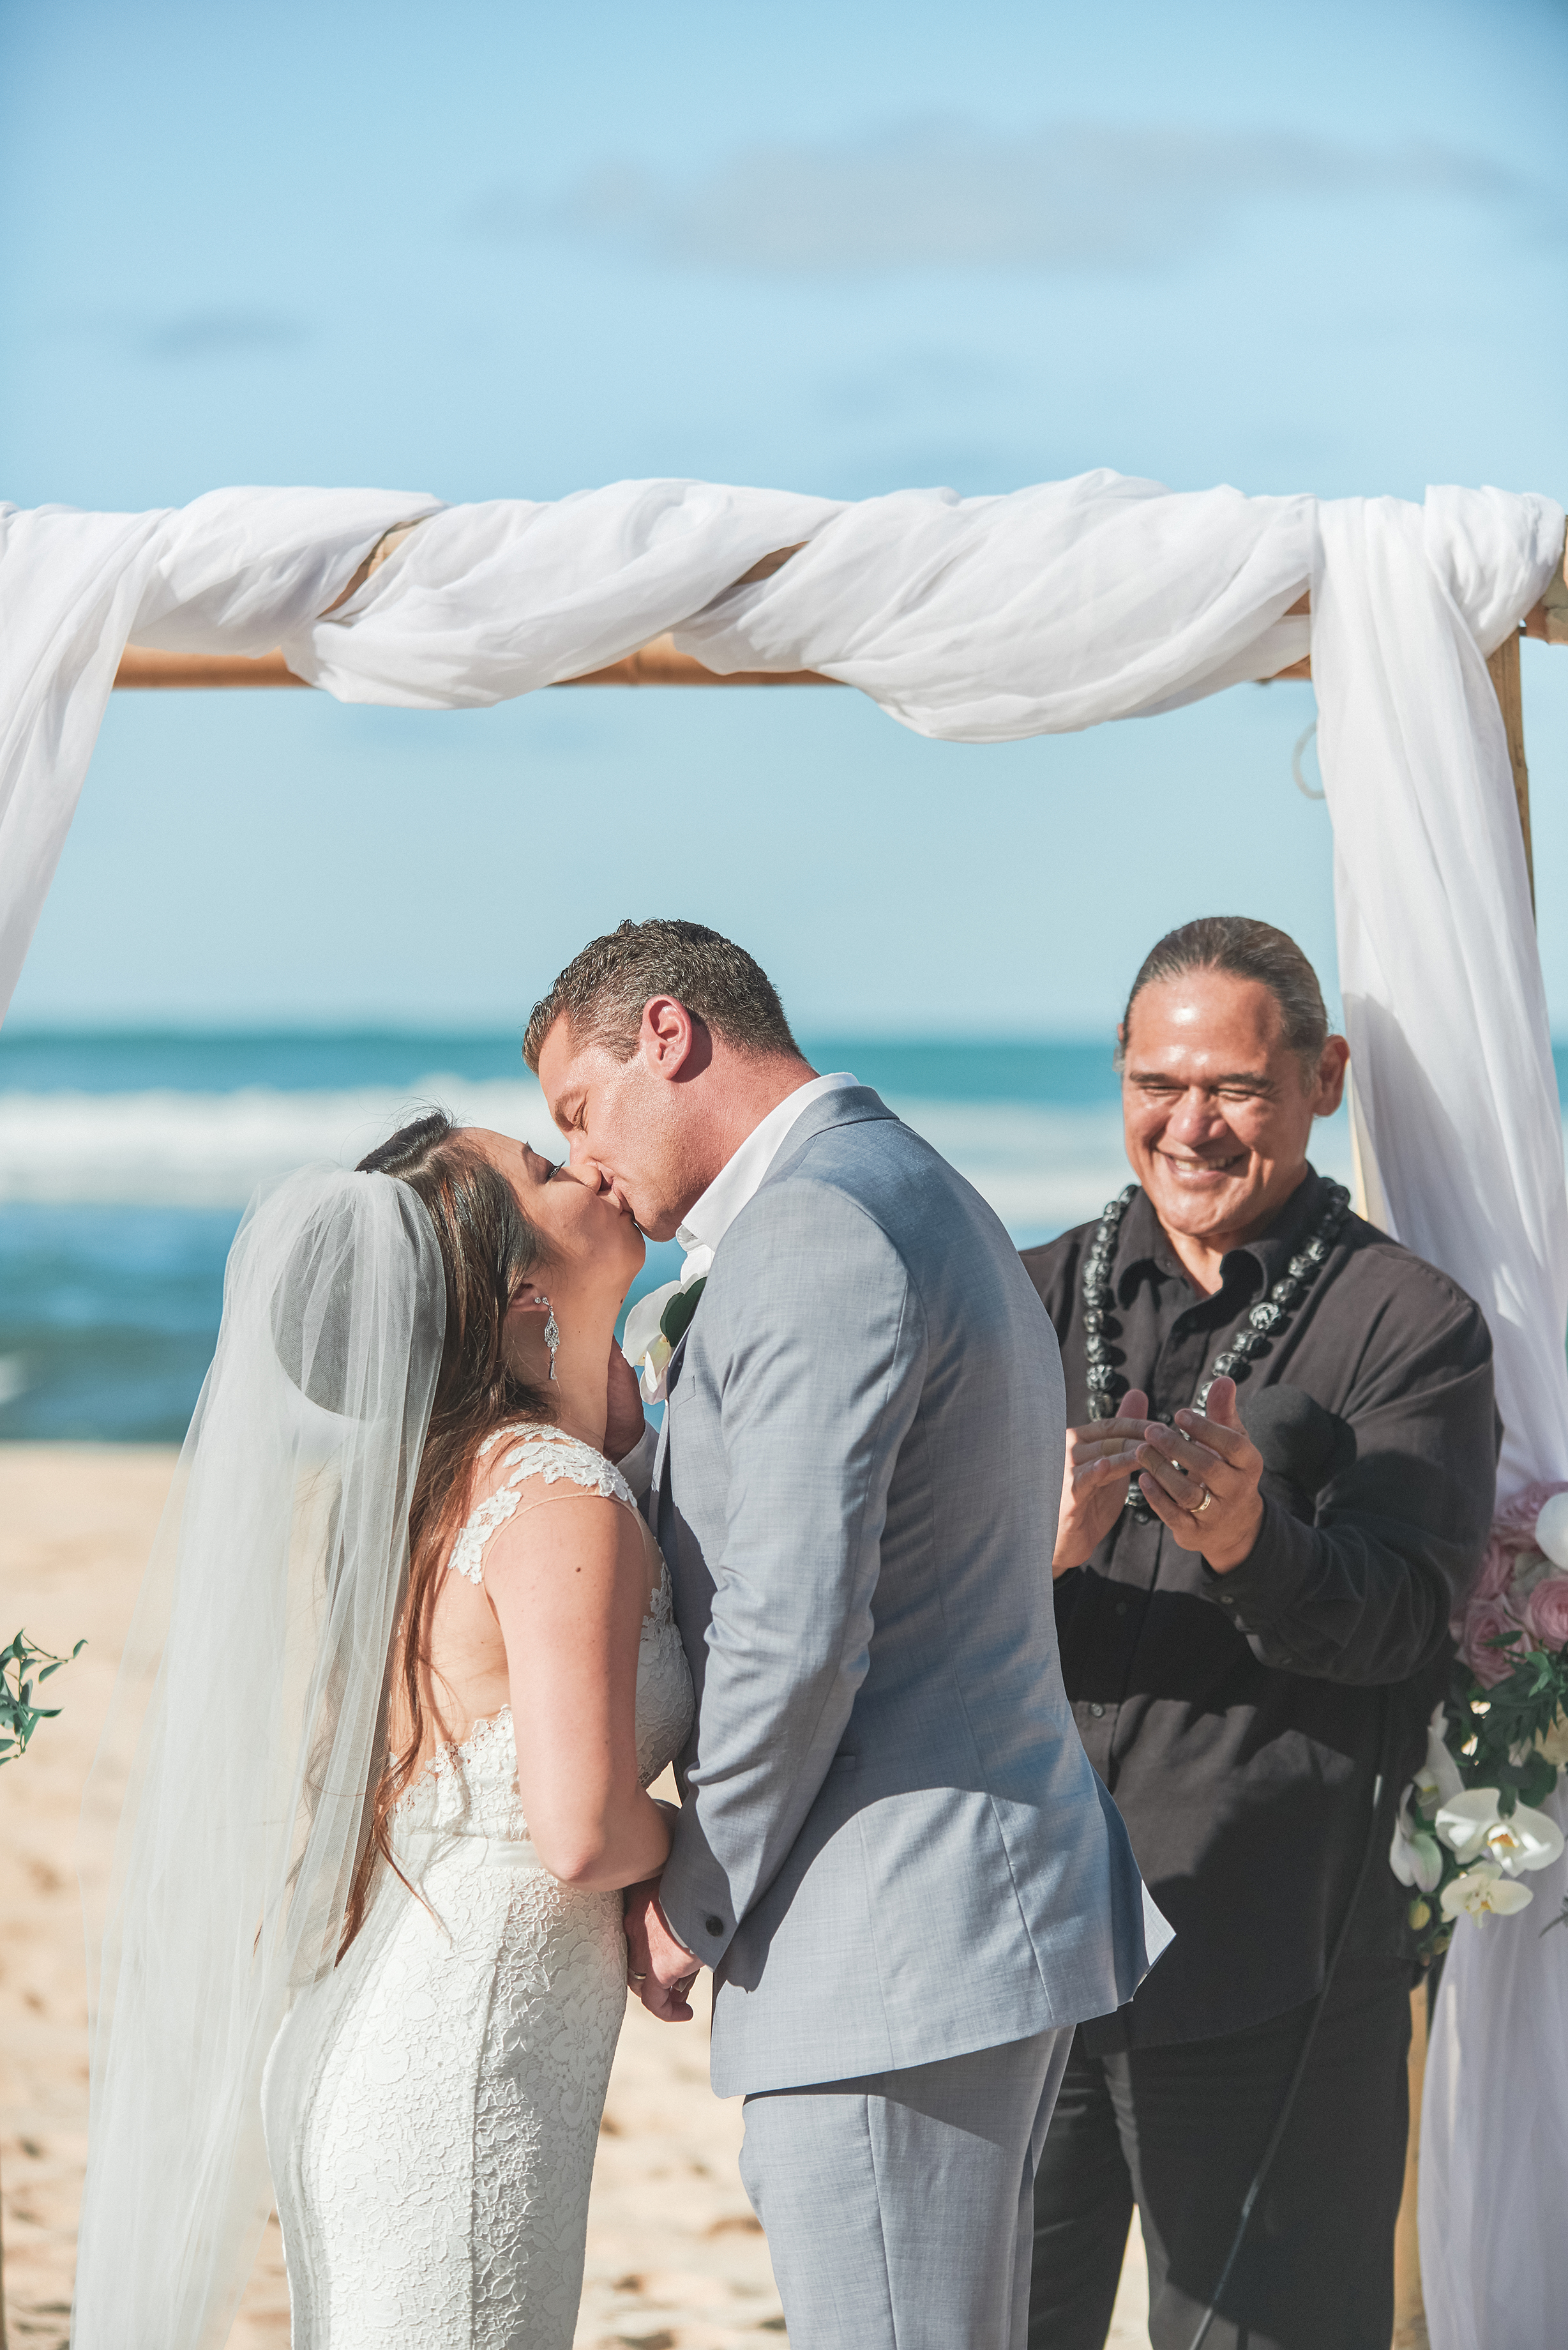 turtle bay resort wedding north shore oahu stephen ludwig photography- terry and isabel (32).jpg